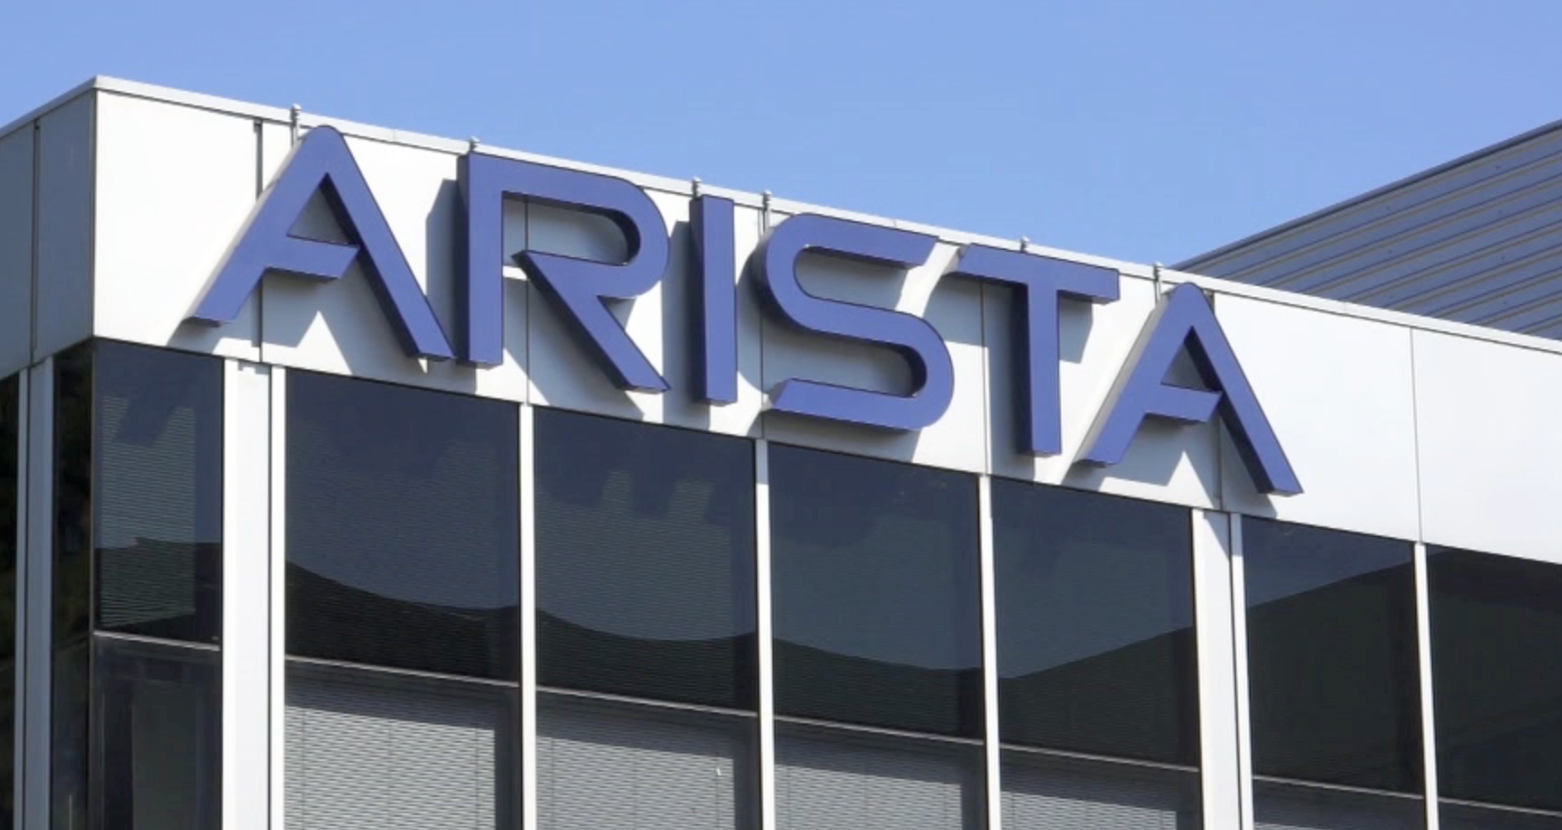 Arista's Exposure To A Few Giant Firms Could Be A Long-Term Achilles' Heel